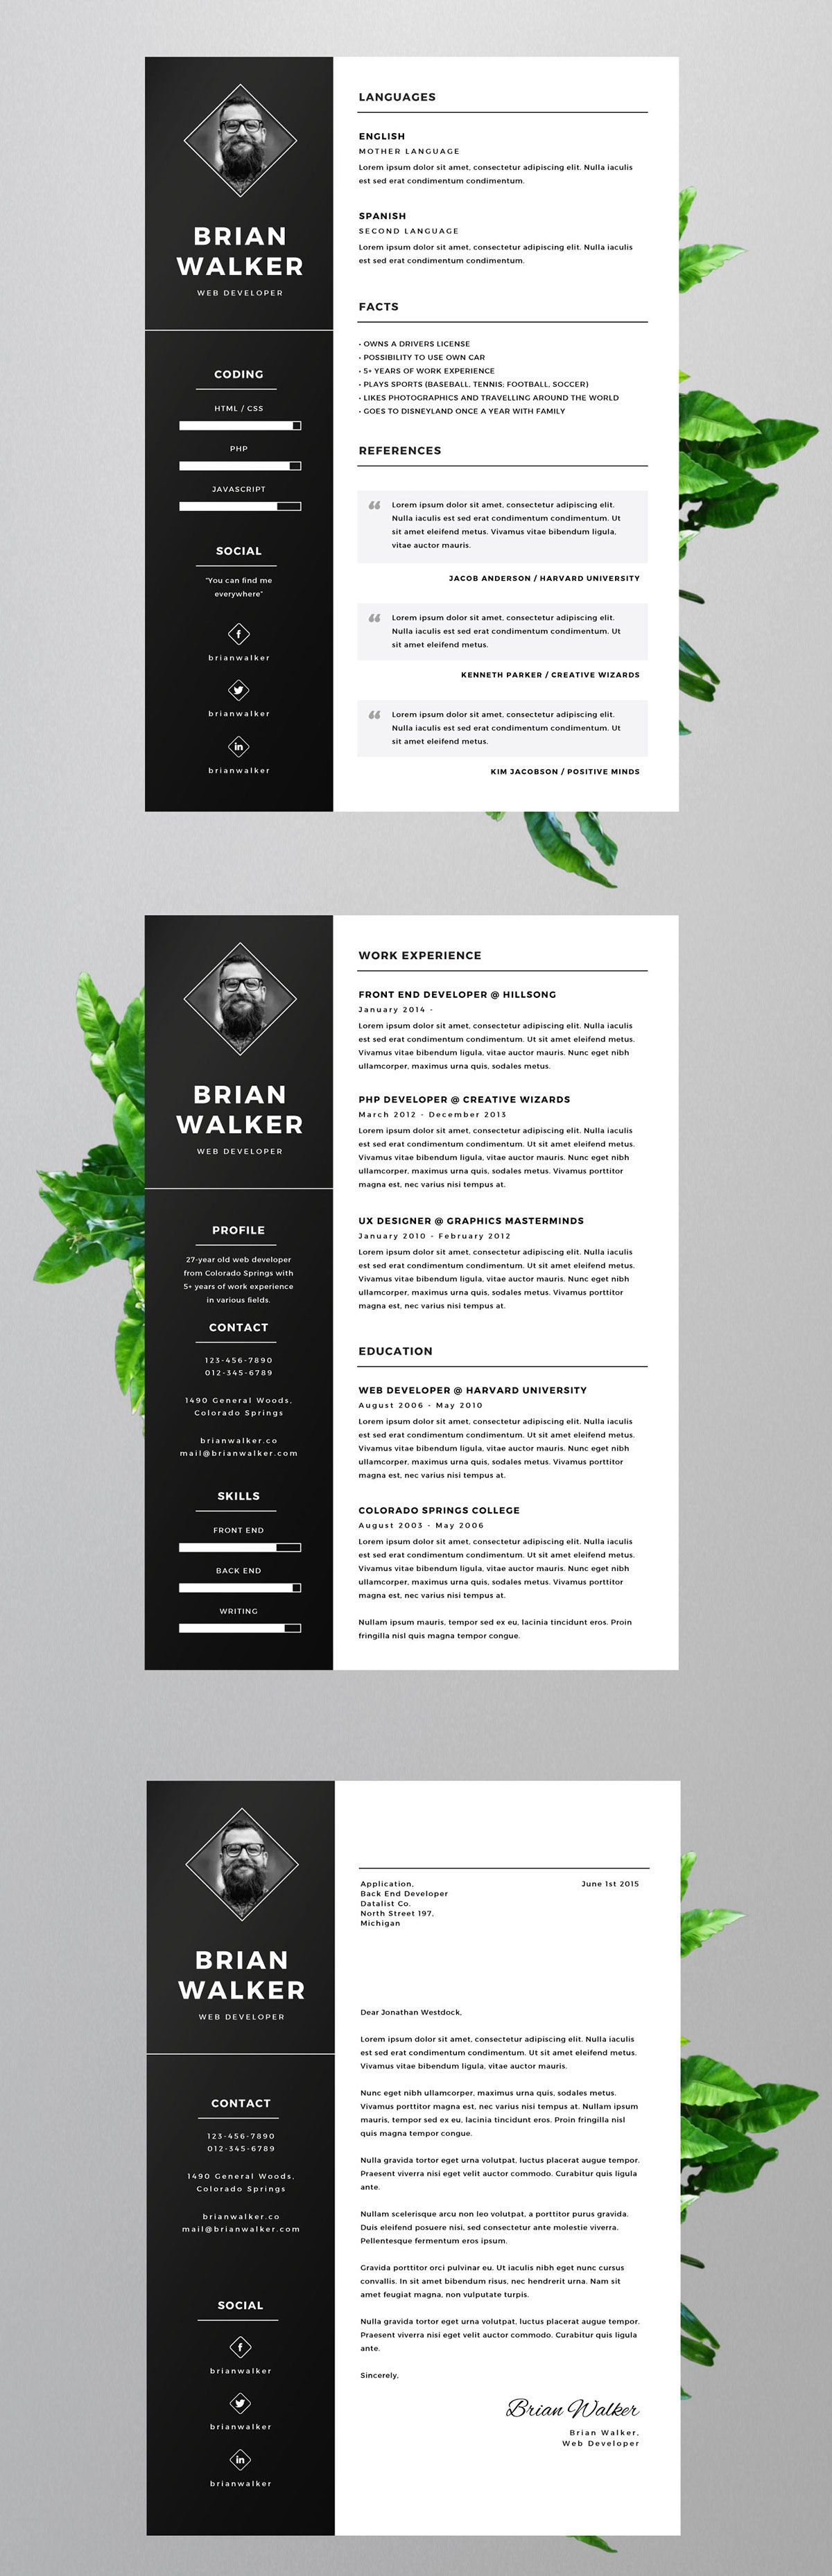 Free resume template for Microsoft Word, Adobe